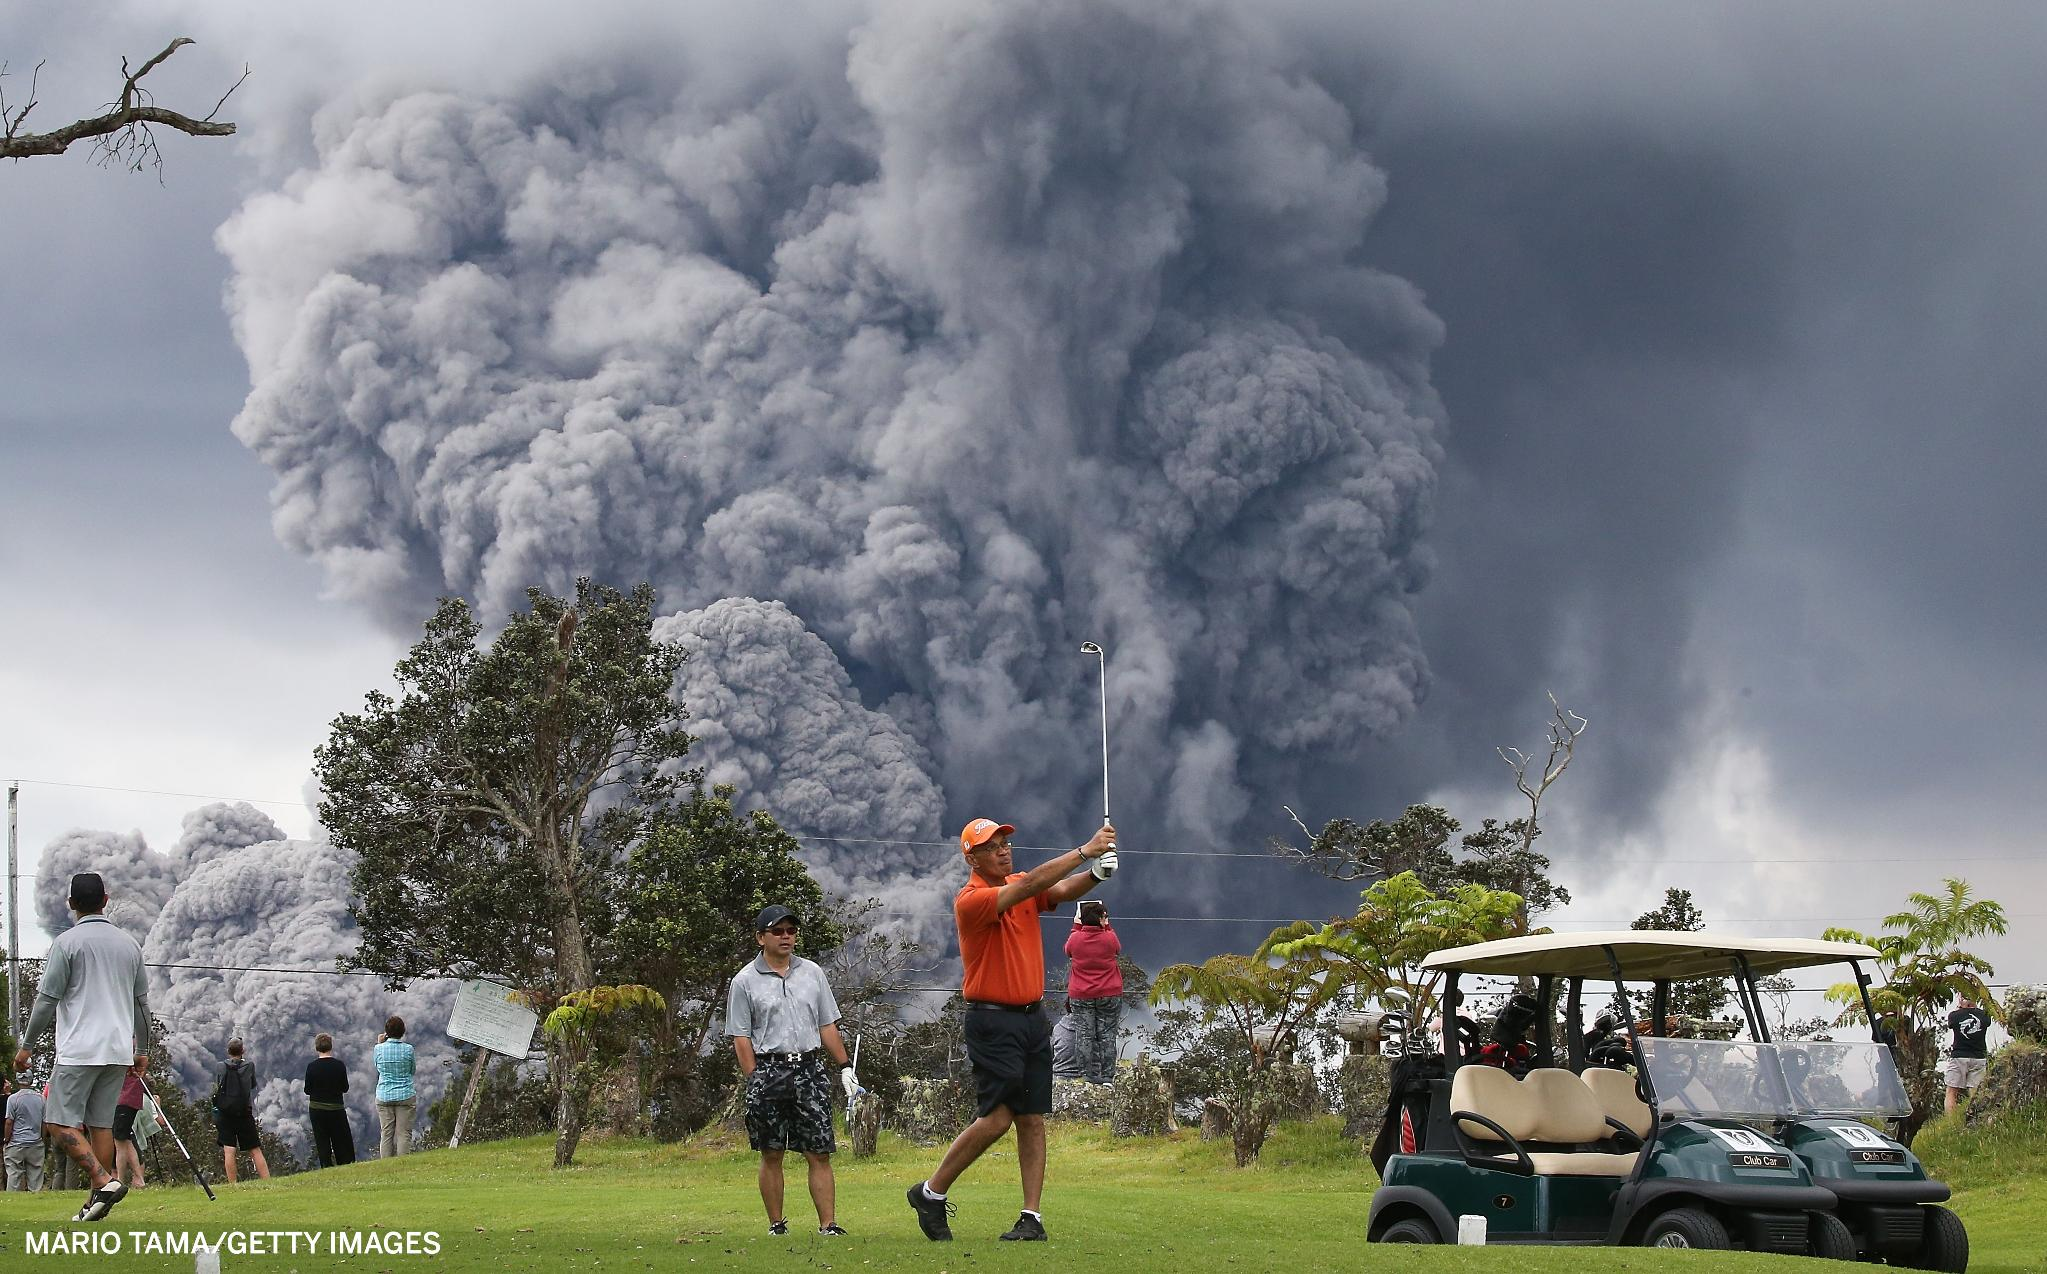 People continue to golf as an ash plume rises in the distance from the Kilauea volcano in Hawaii. https://t.co/bAxOAA9zkN